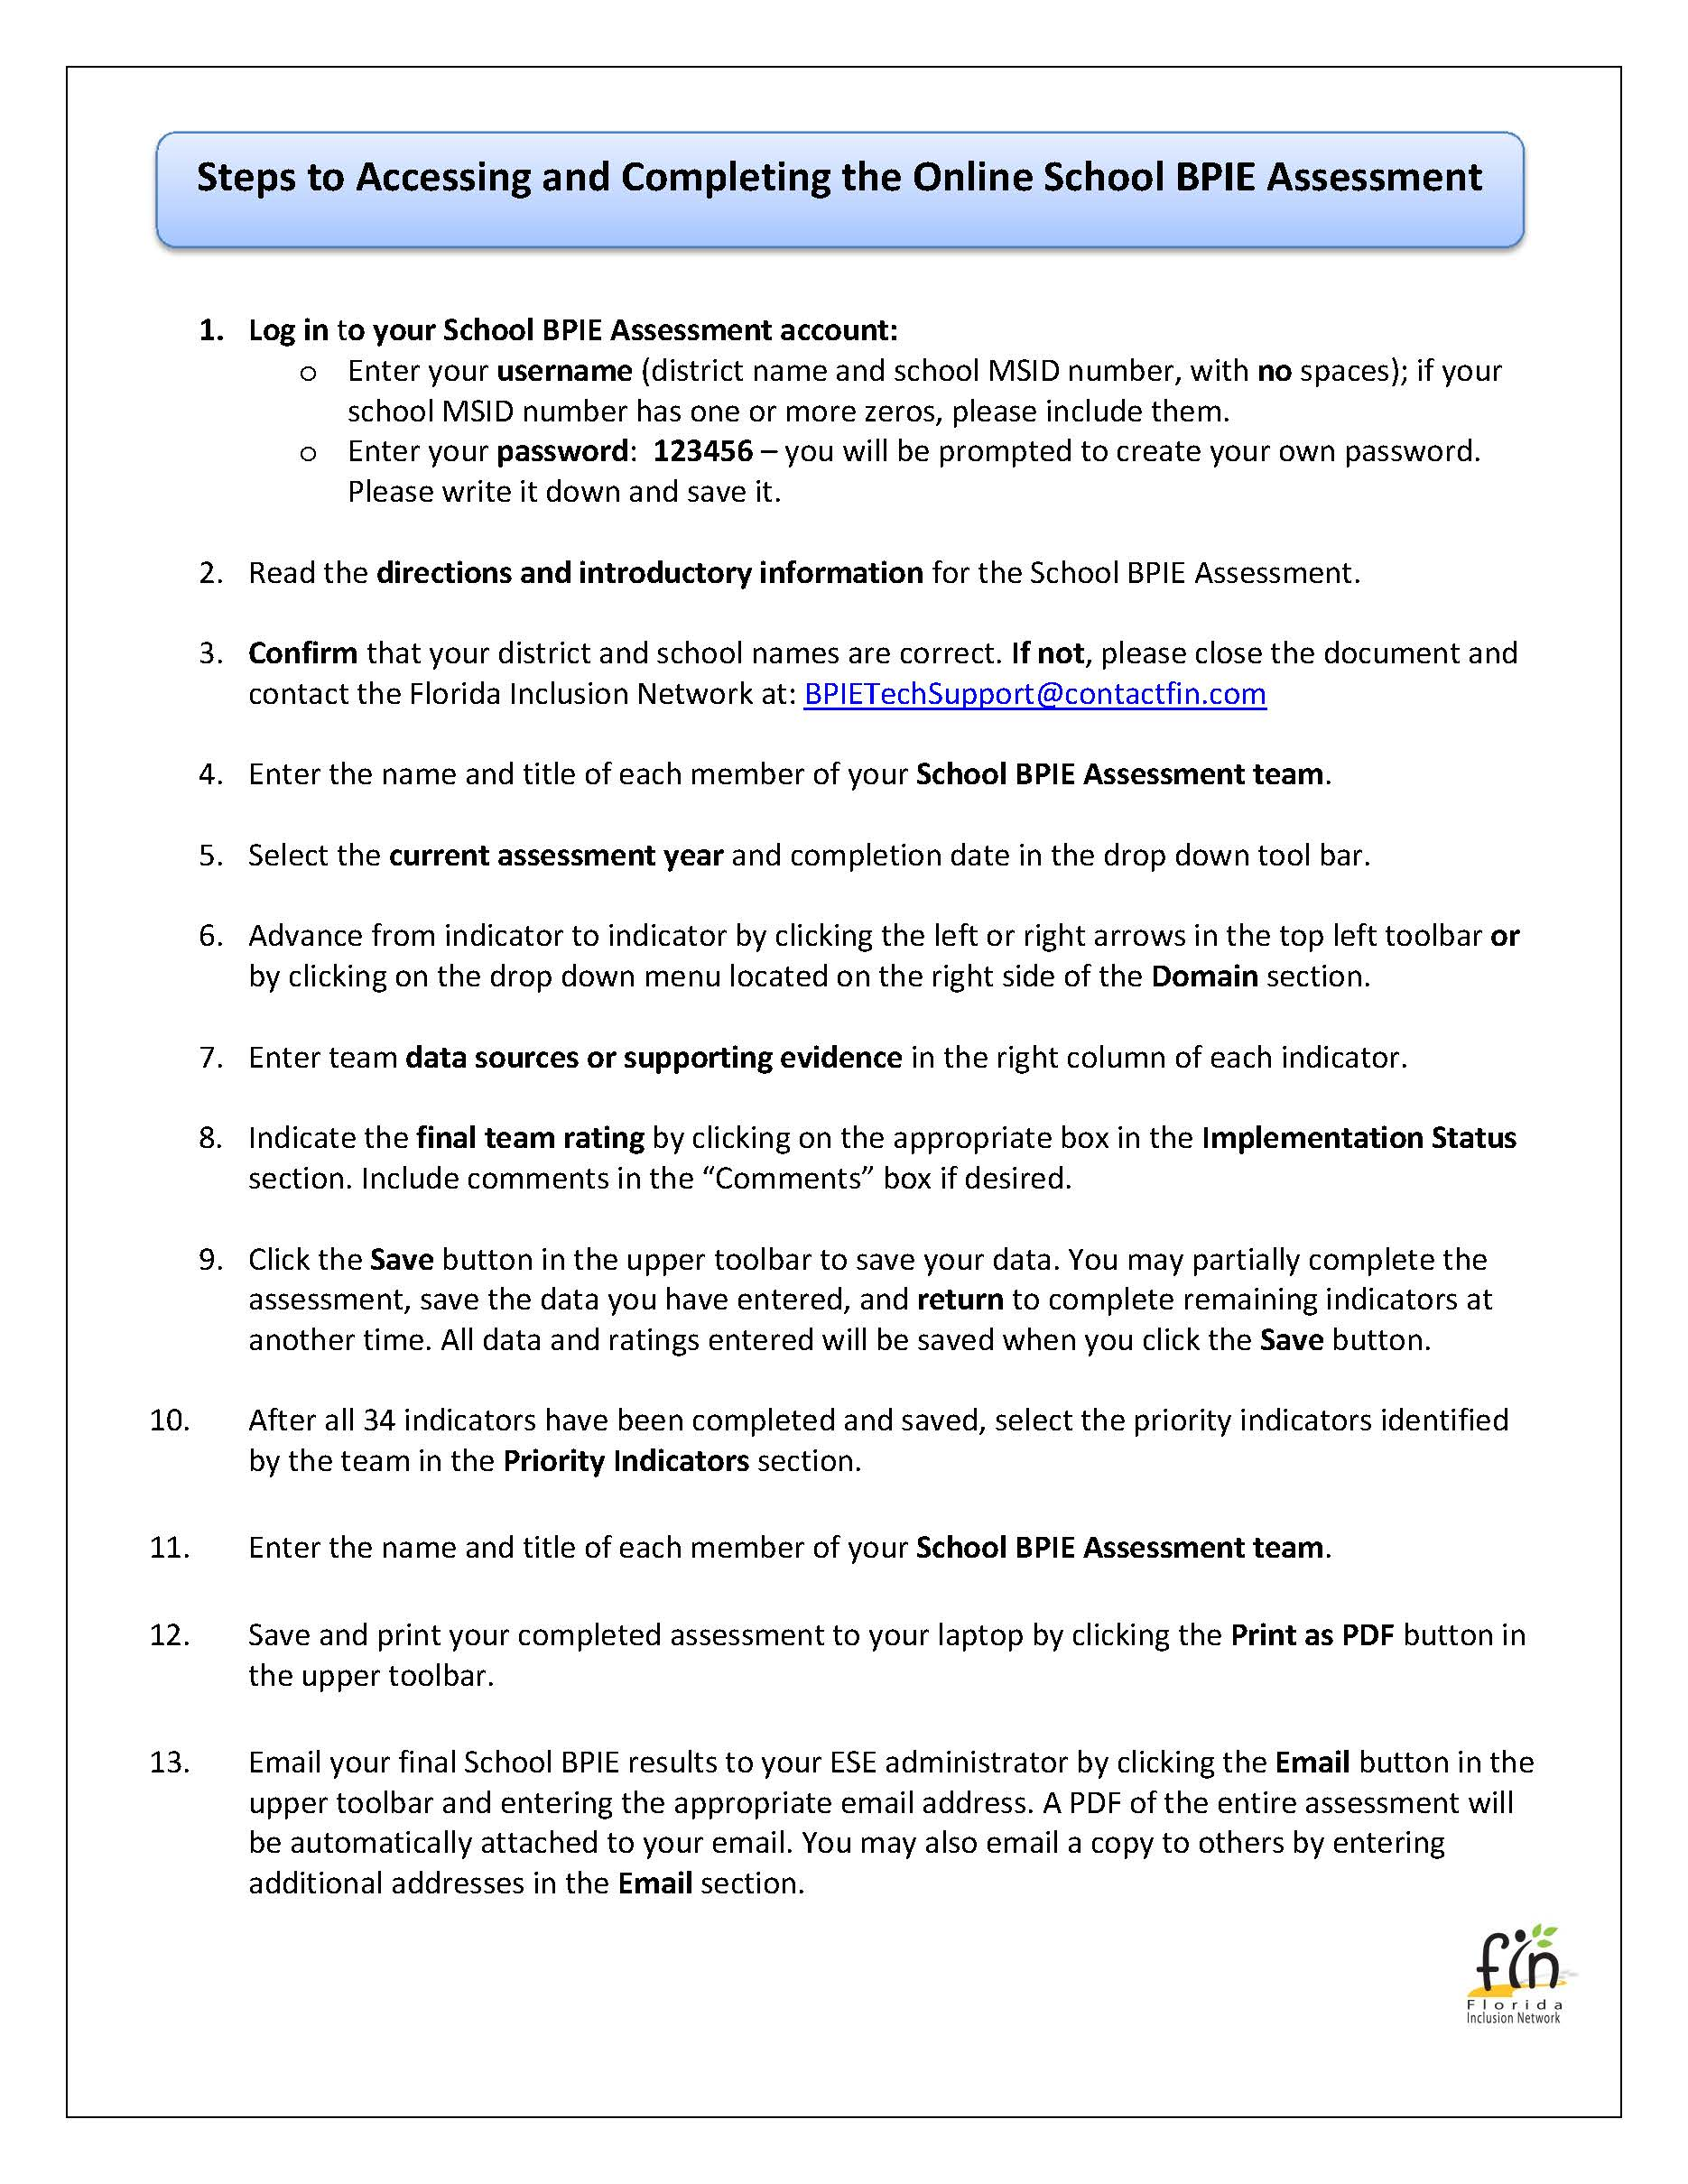 Steps to Complete the Online BPIE Assessment Form